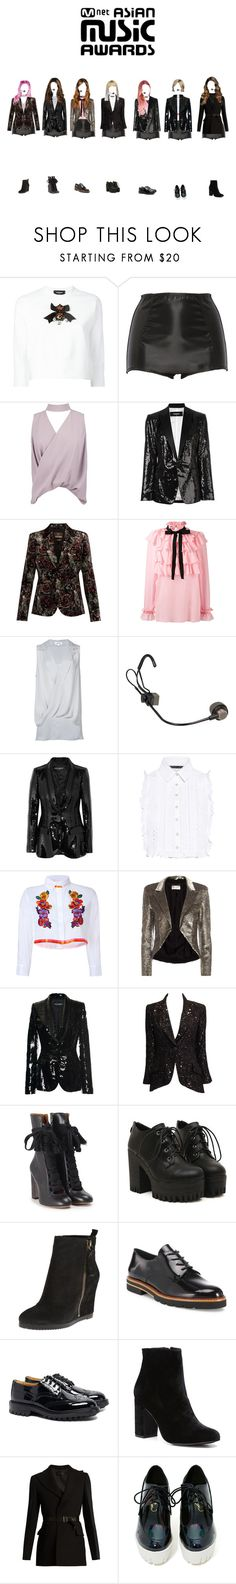 """BS&T"" by yaseumin ❤ liked on Polyvore featuring Dsquared2, Dolce&Gabbana, Boohoo, Roberto Cavalli, Gucci, L'Agence, Marissa Webb, Alberta Ferretti, Yves Saint Laurent and Chanel"